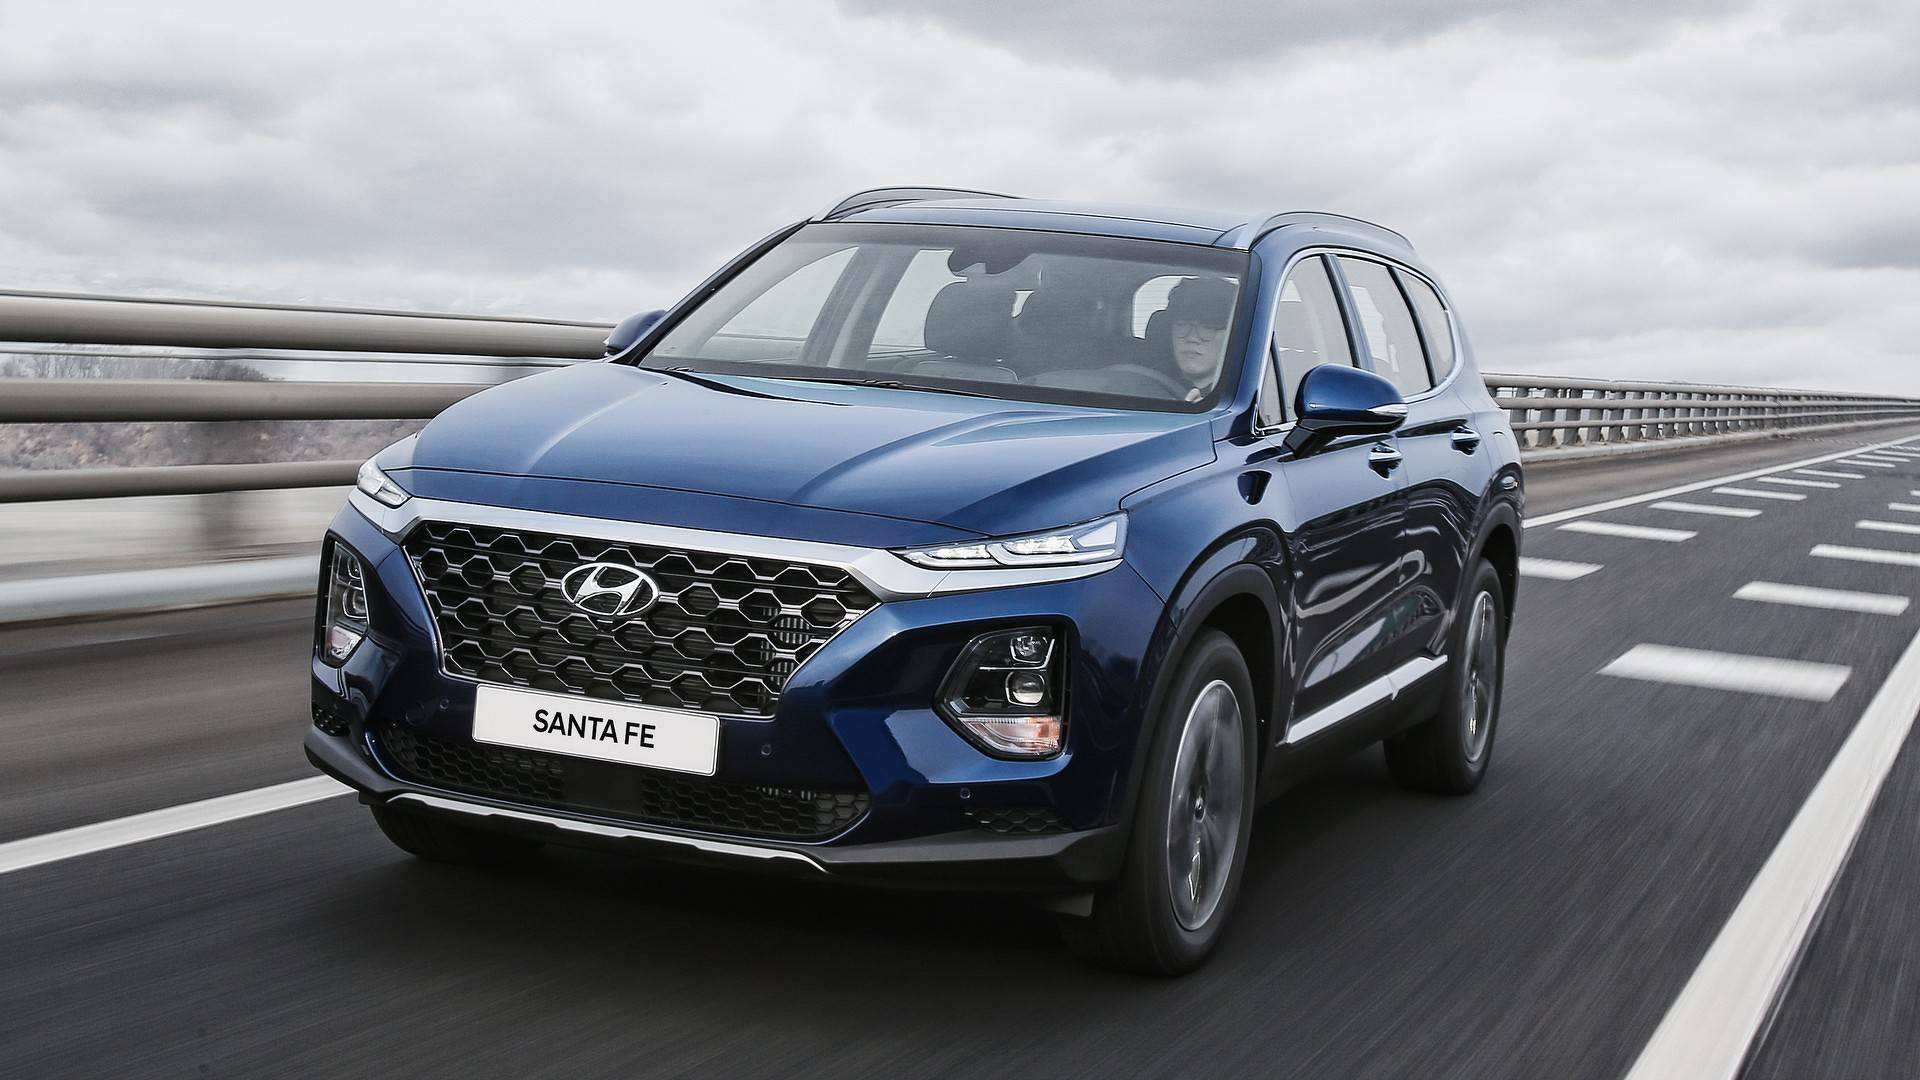 90 All New 2020 Santa Fe Sports Price And Review